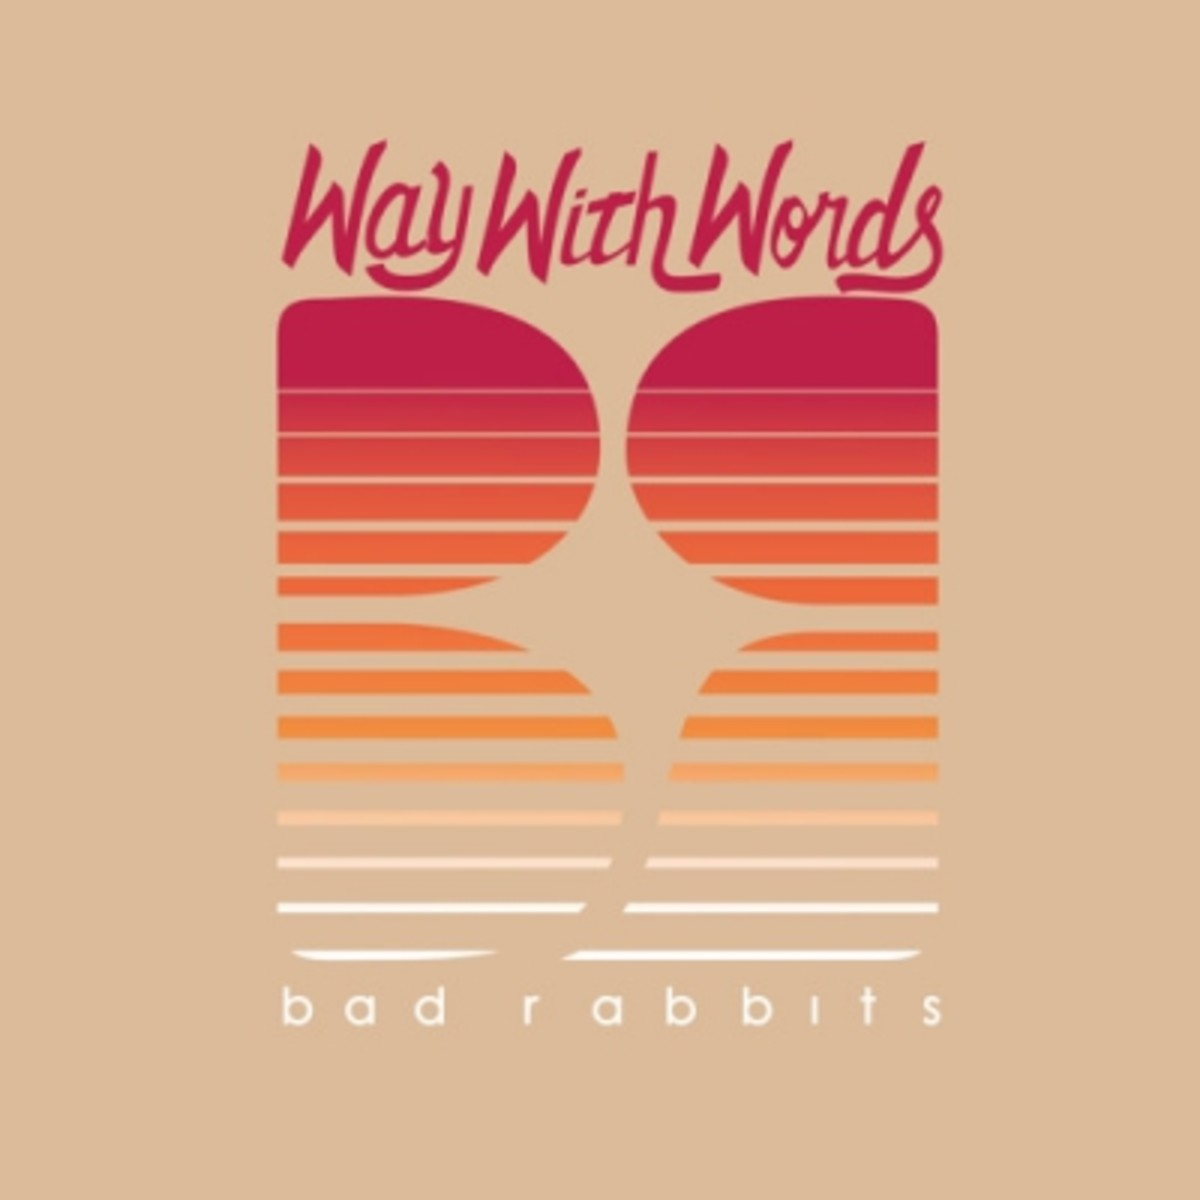 bad-rabbits-way-with-words.jpg